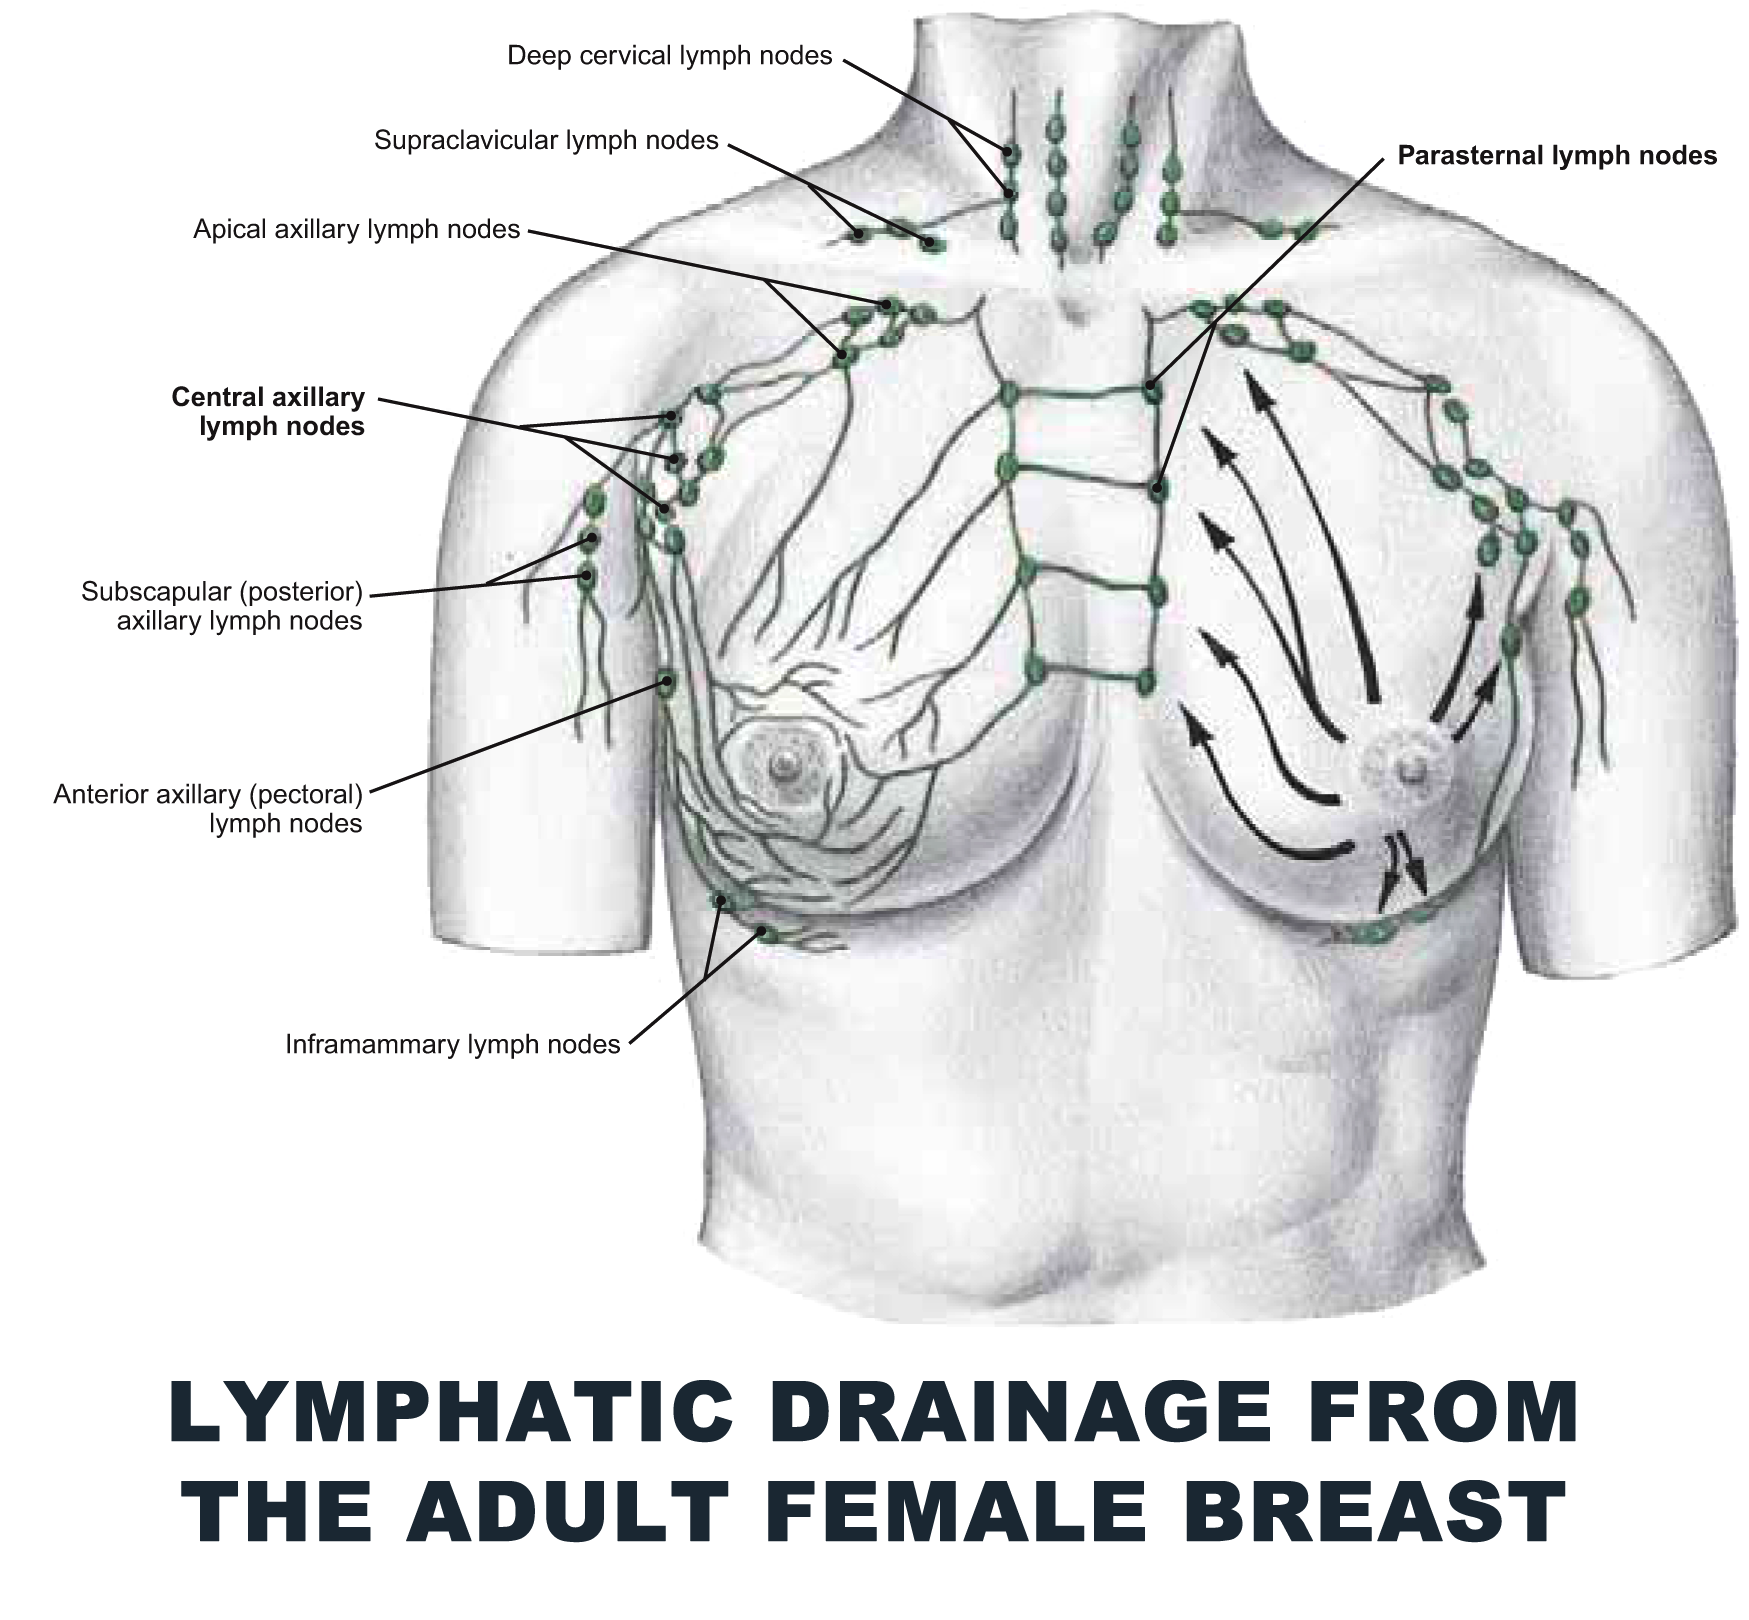 Lymphatic Drainage From The Adult Female Breast Anatomy Images